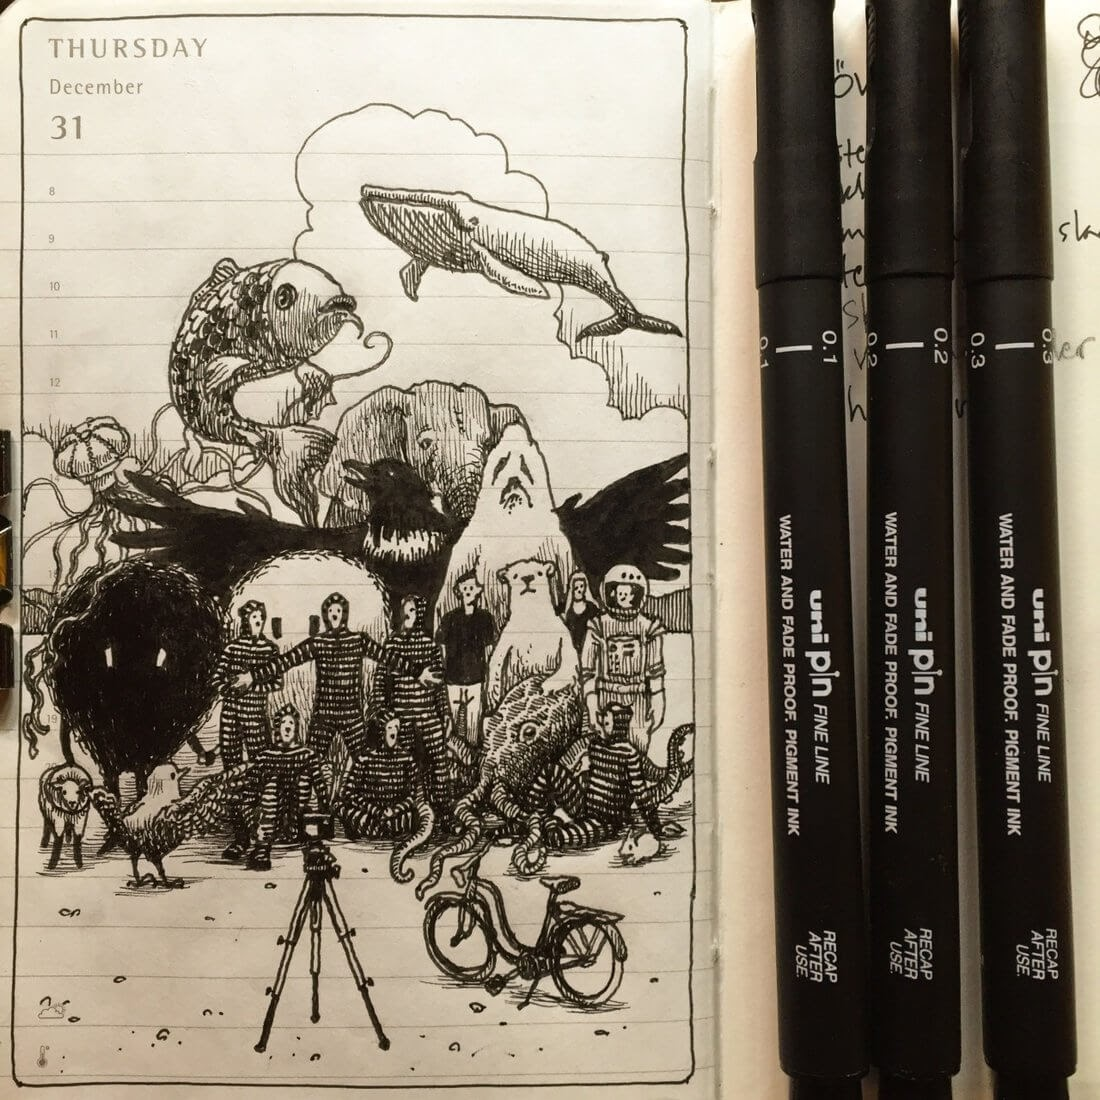 14-Coming-Together-Nina-Johansson-Moleskine-Diary-of-Surreal-Ink-Drawings-www-designstack-co